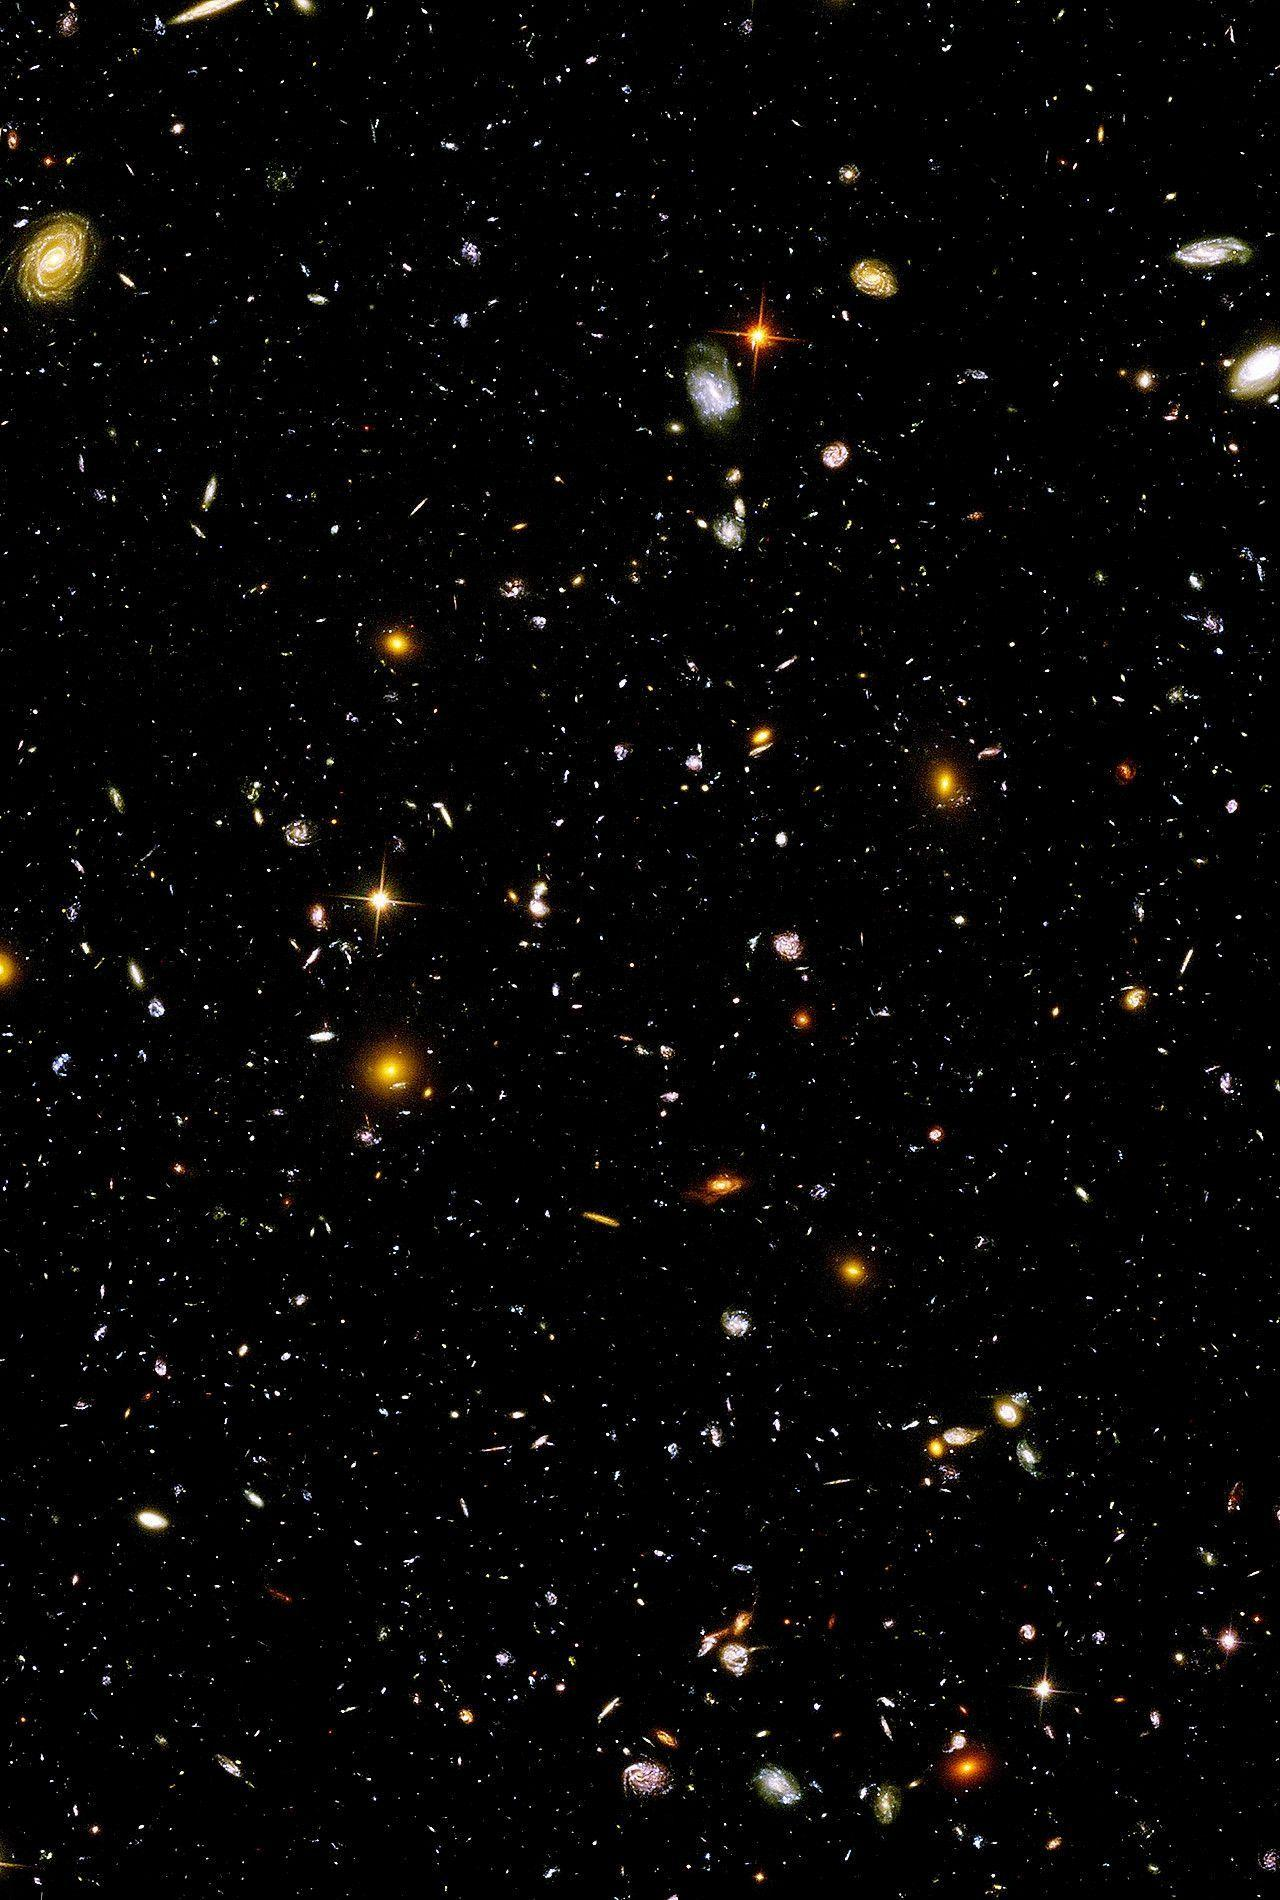 hubble deep field hd wallpaper - photo #11